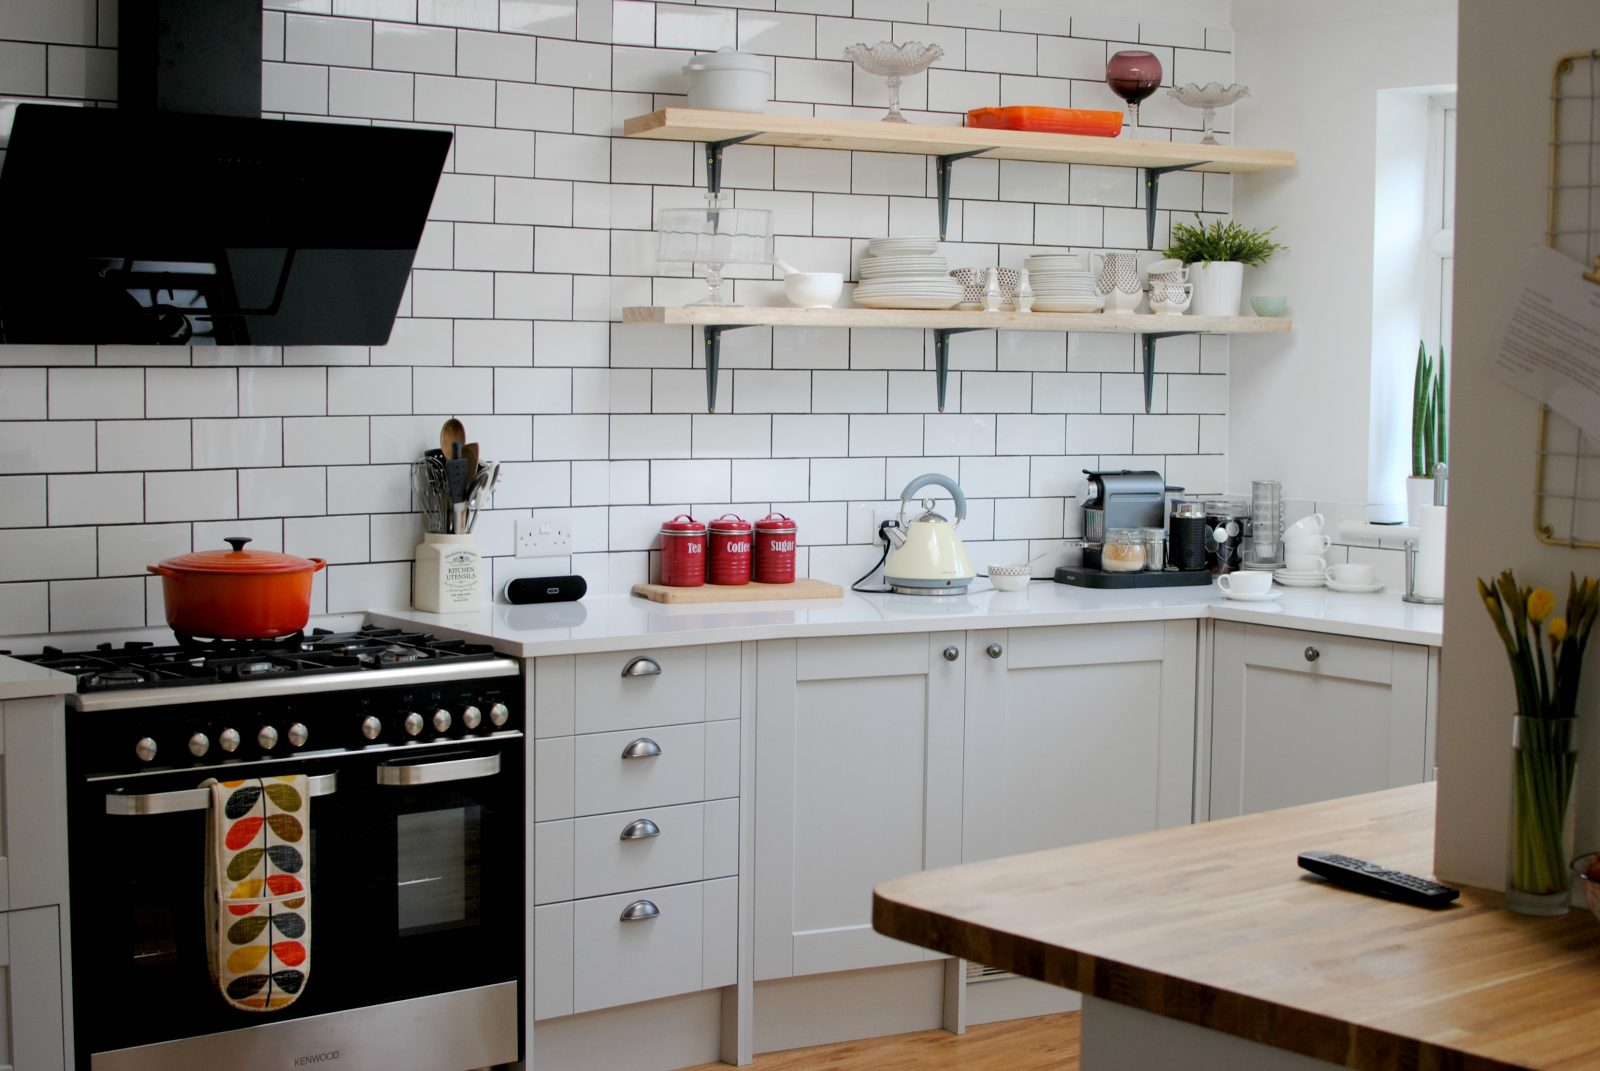 Updating your kitchen on a budget